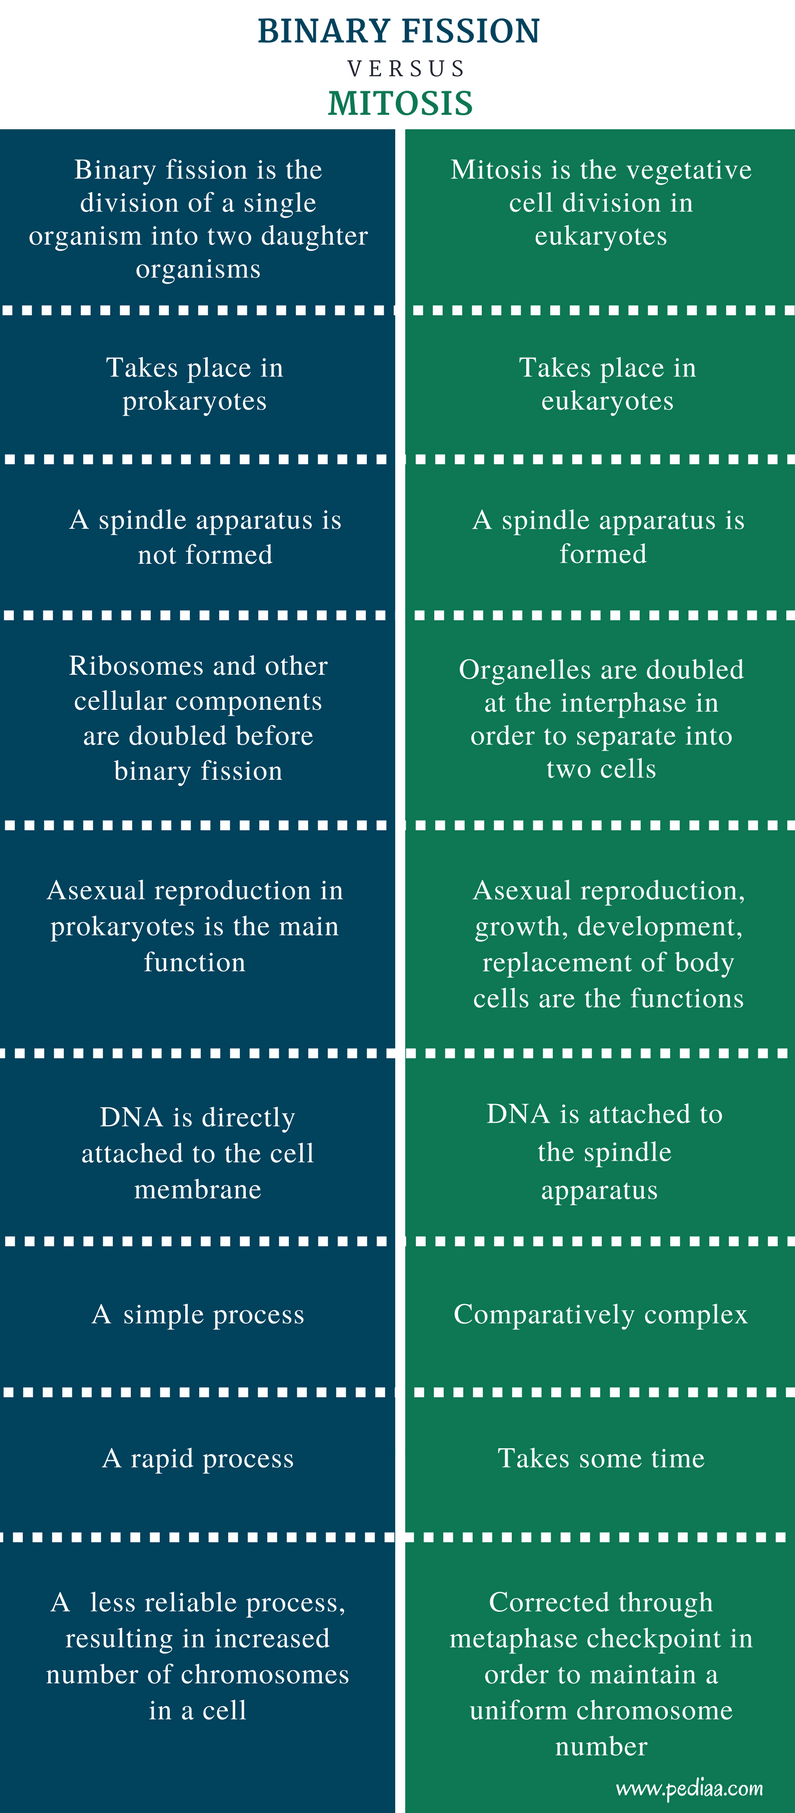 Difference Between Binary Fission And Mitosiscomparison Summary